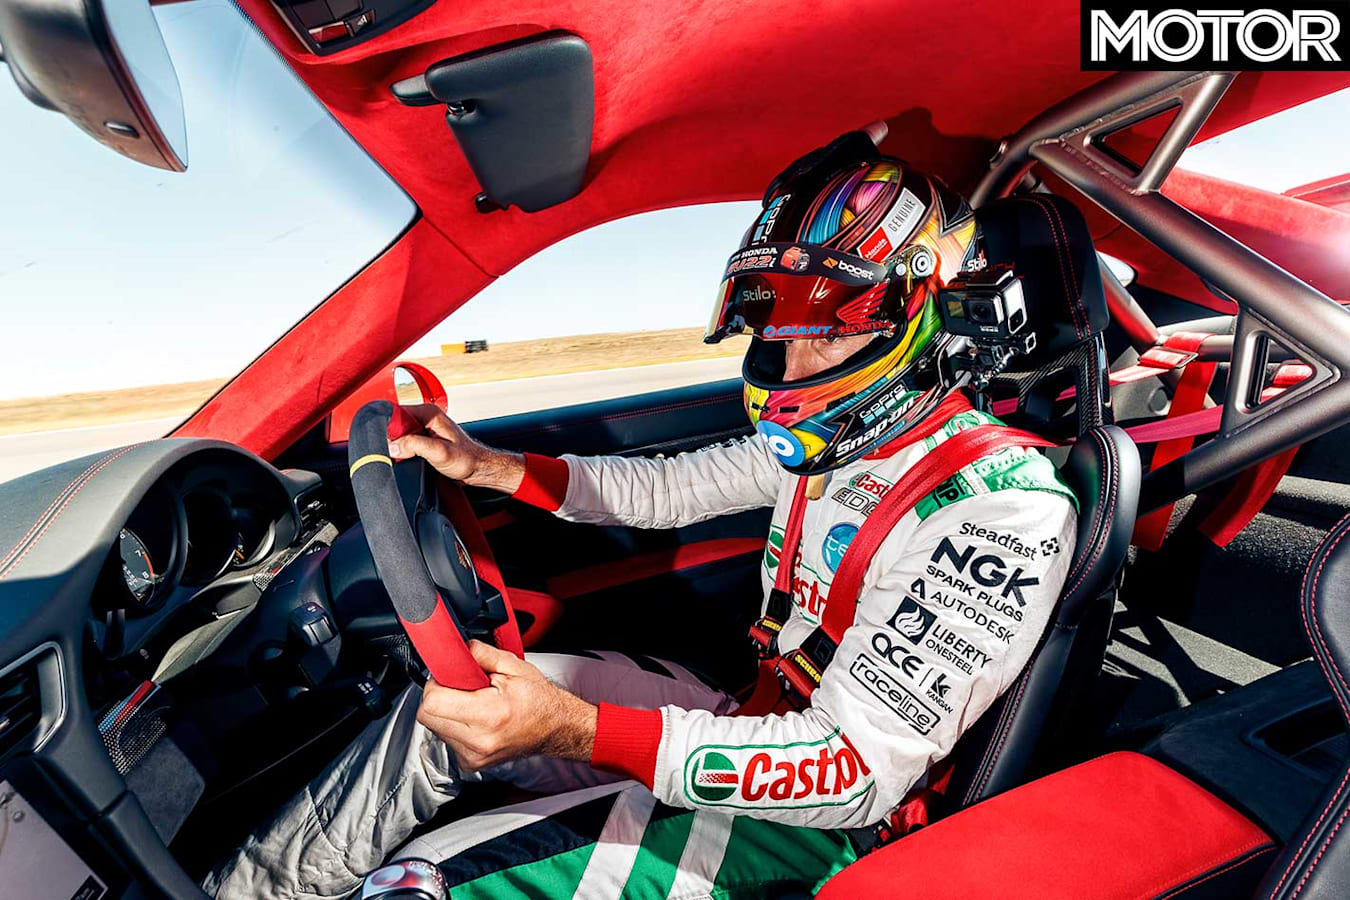 Performance Car Of The Year 2019 Track Test Rick Kelly Porsche 911 GT 2 RS Jpg